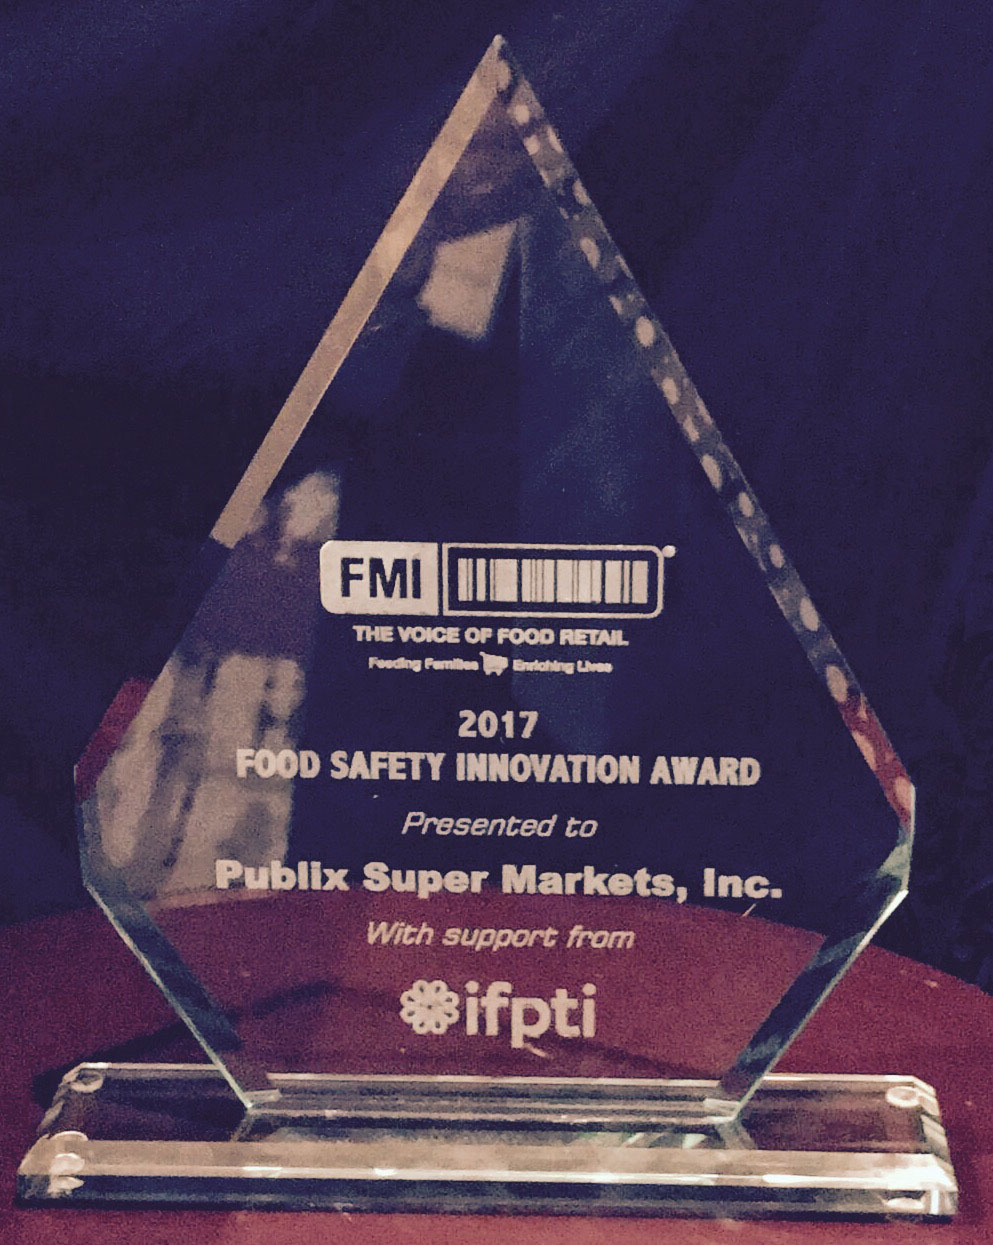 Food Safety Innovation Award